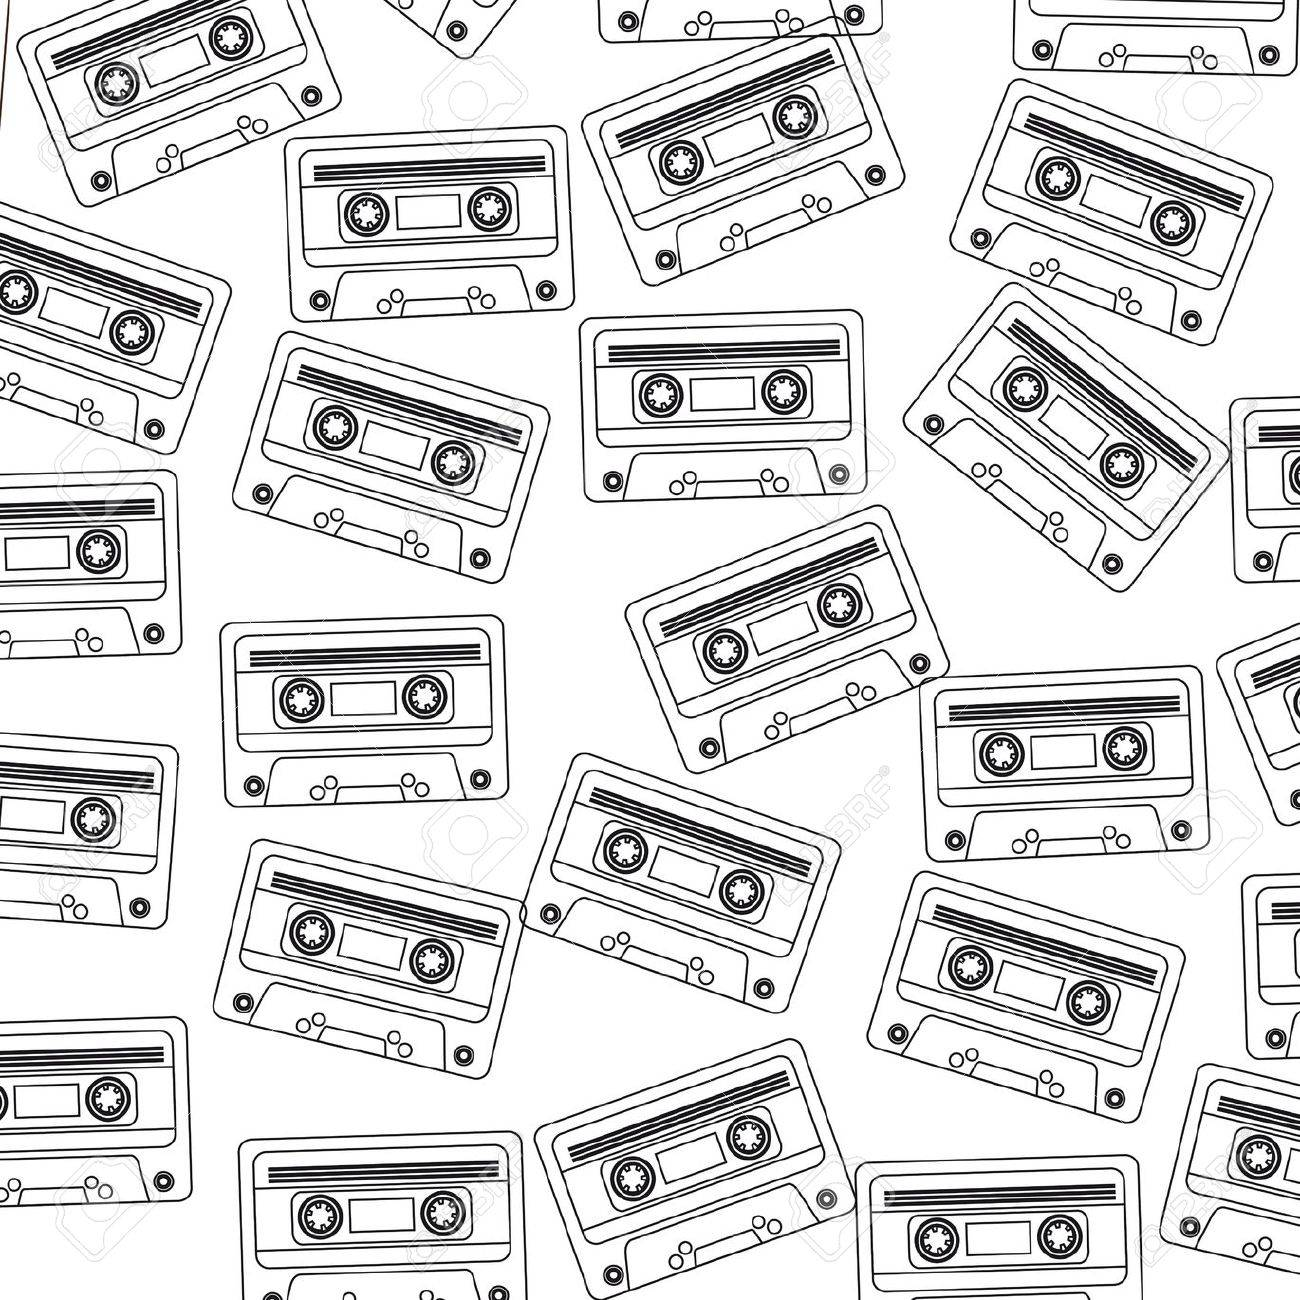 Boombox Vector Drawing Illustration Retro Sketch Stock Vector ...